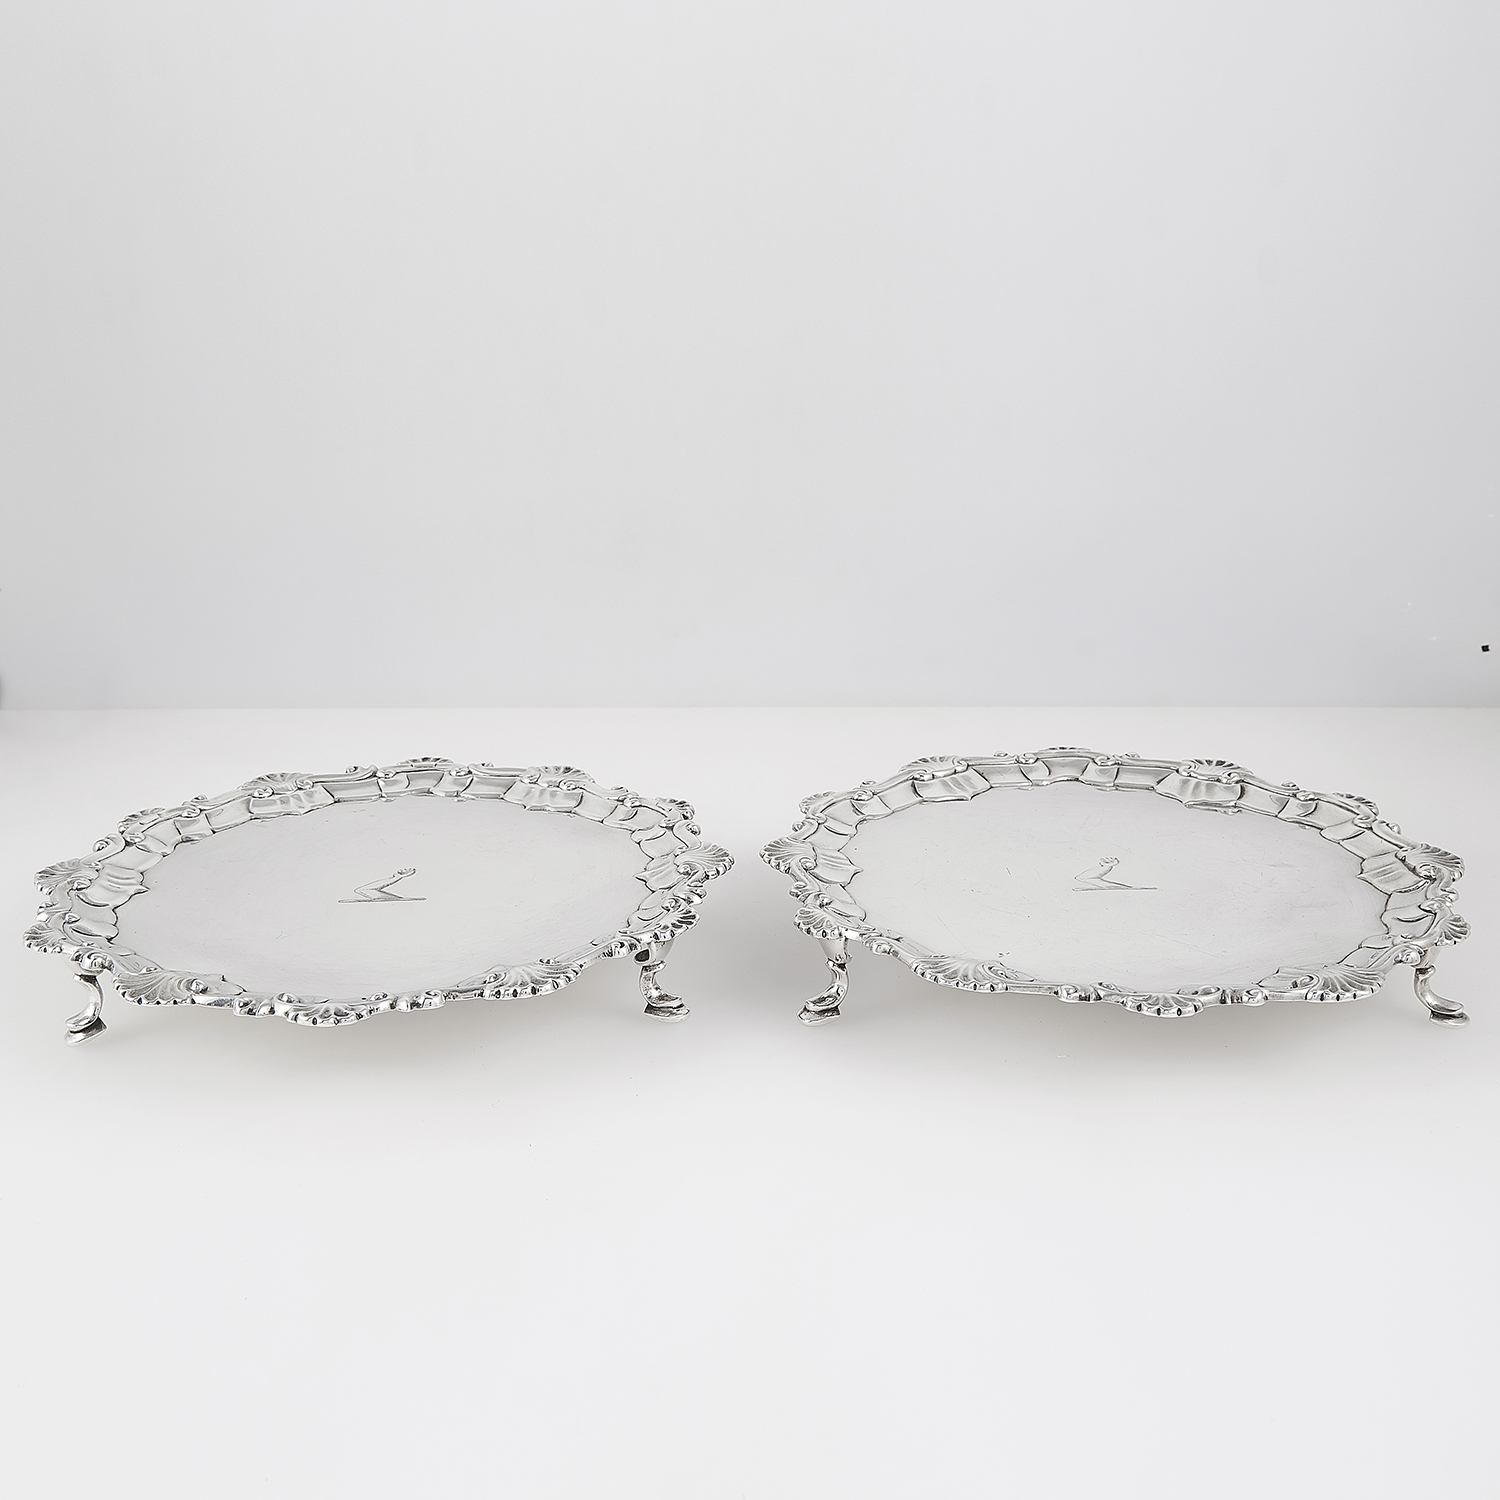 Los 18 - TWO MATCHED GEORGE II / III STERLING SILVER SALVERS, DOROTHY MILLS 1752 AND JOHN CROUCH 1770 of